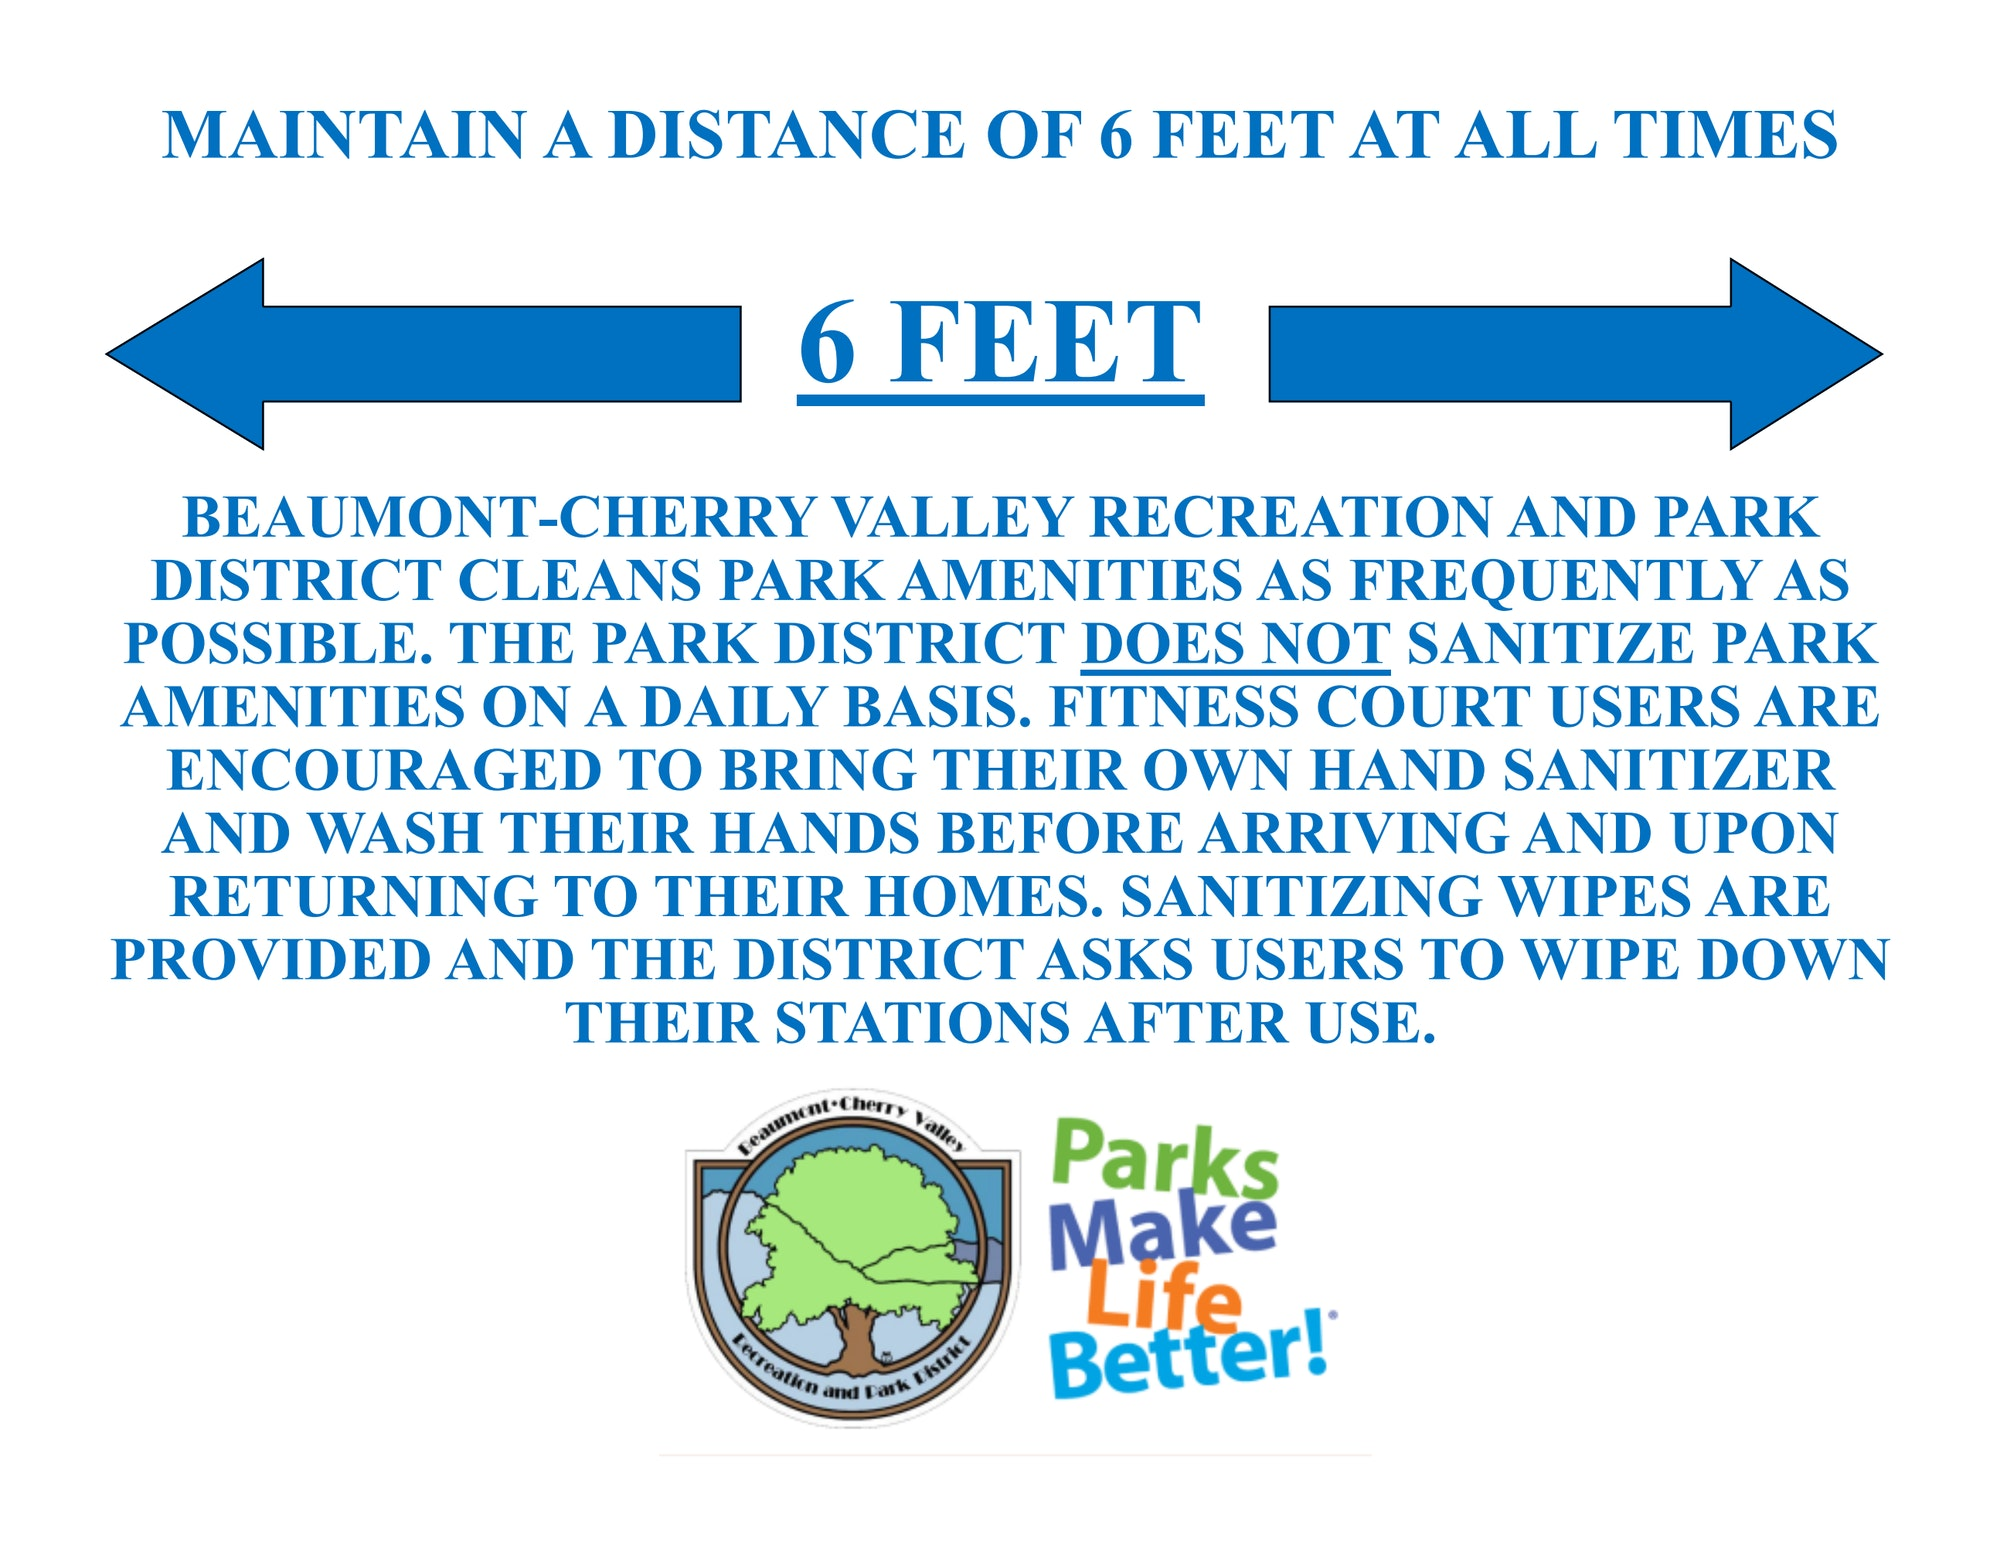 Please maintain 6 feet of distance and wipe down your stations after use